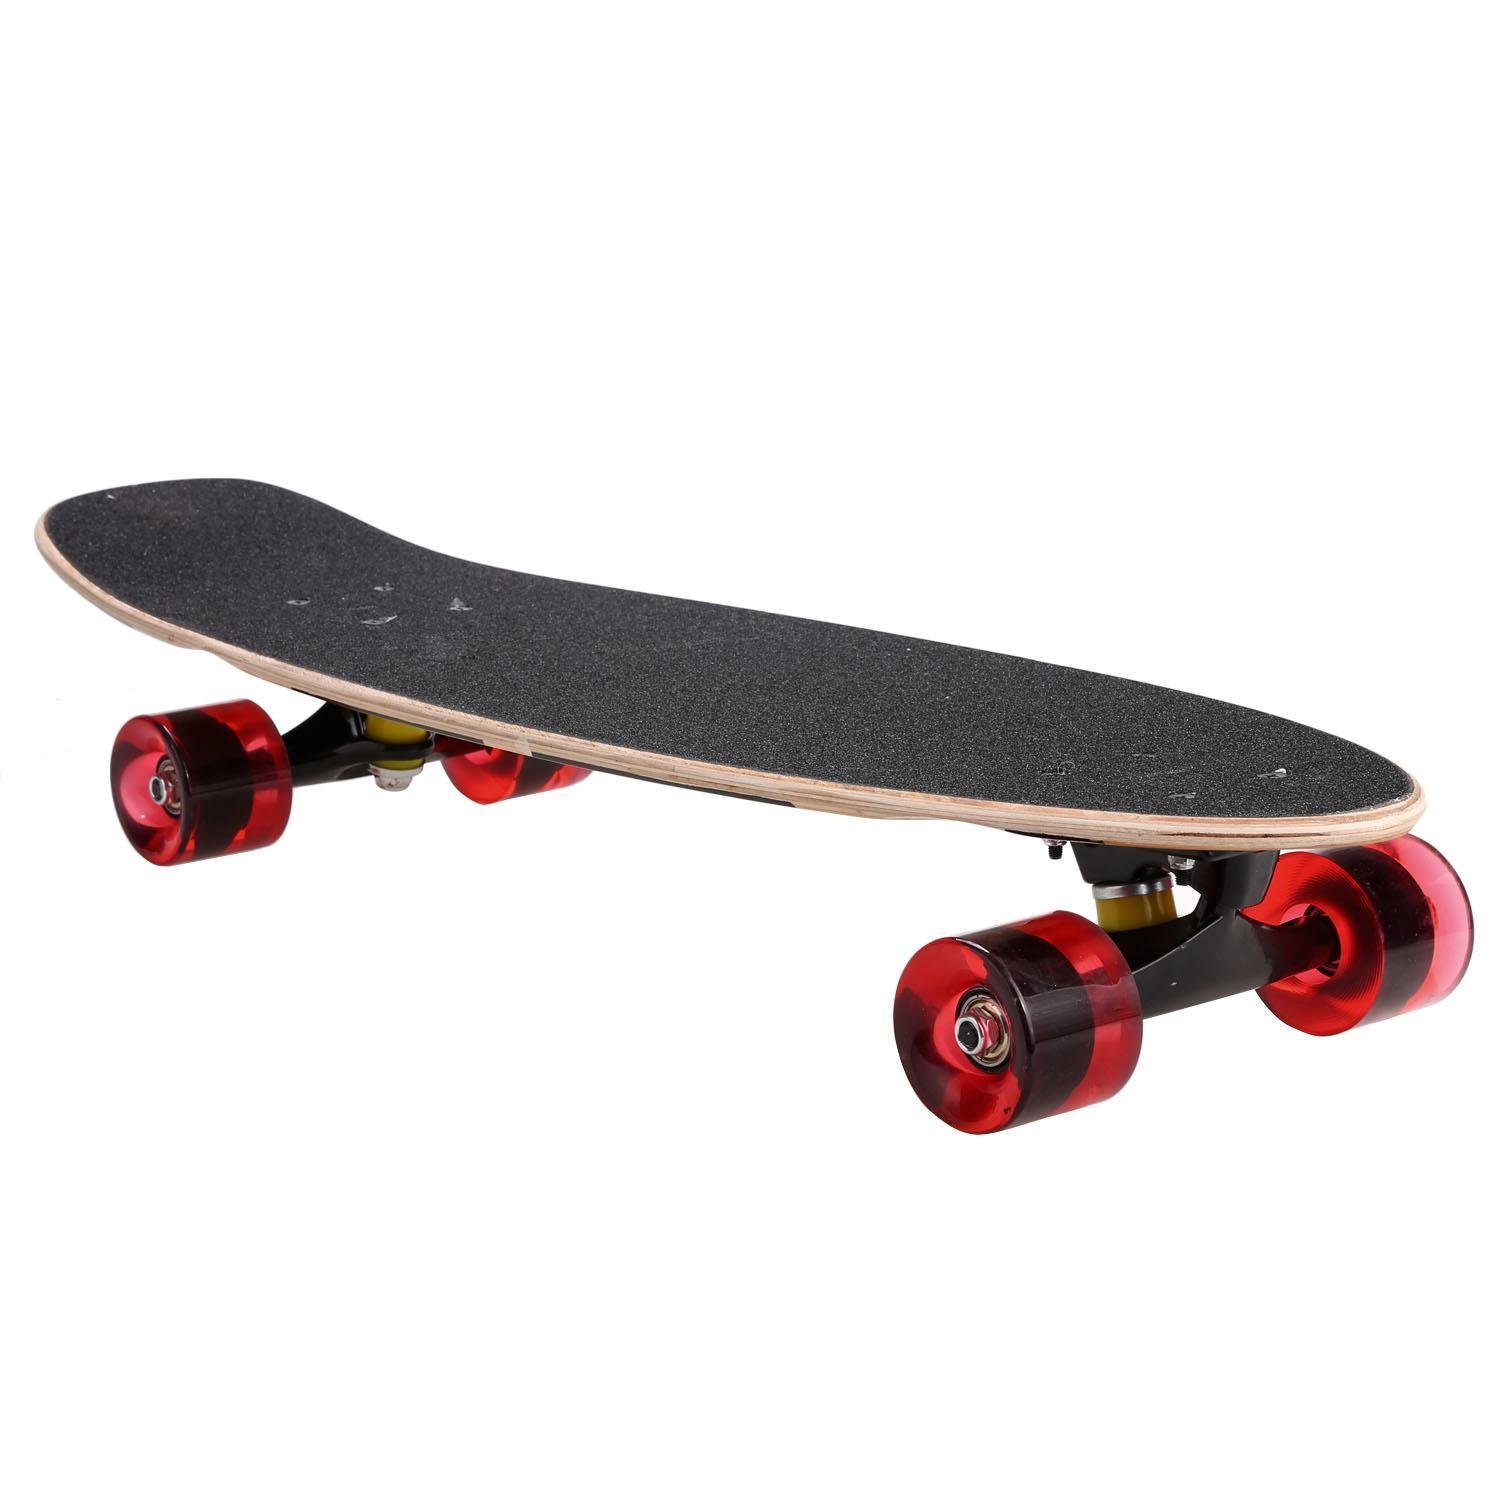 Evokem 27inch Cruiser Skateboard, Wooden Deck Style Complete Longboard, Outdoor Fun Stitching Color Skate Board with Smooth PU Wheels for Adults, Teens, Kids (Black)